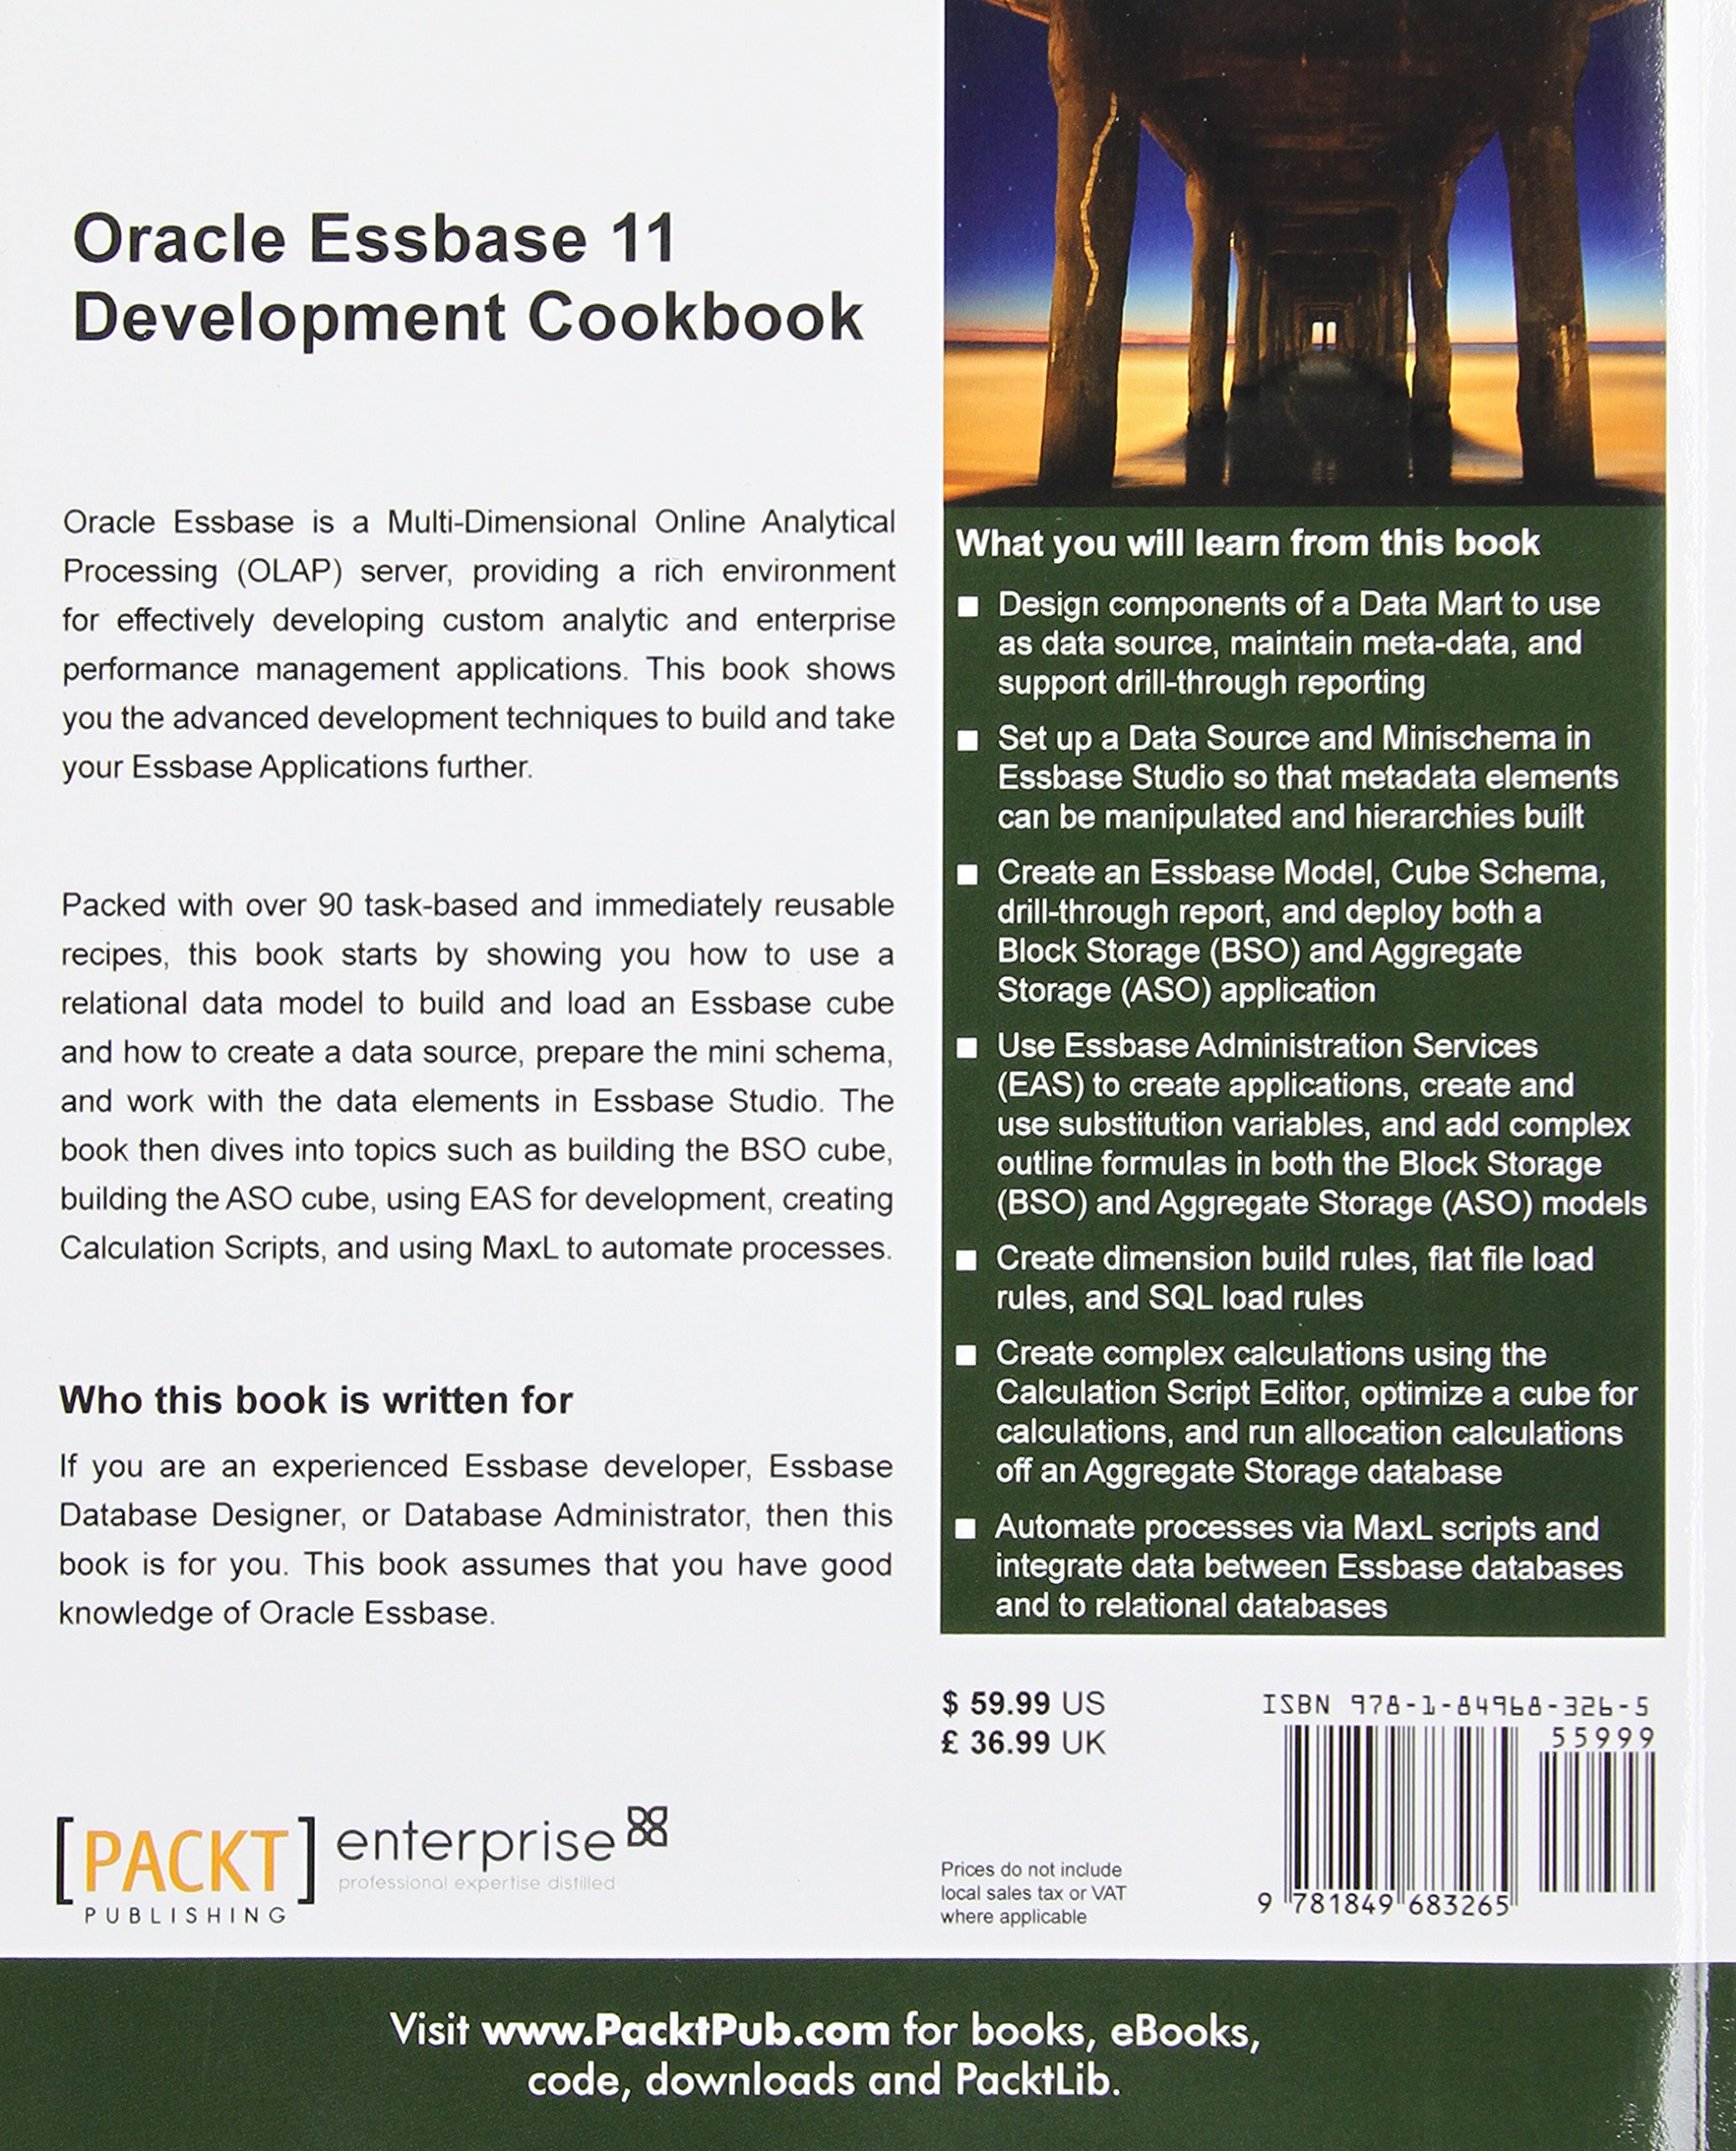 Oracle Essbase 9 Implementation Guide Pdf